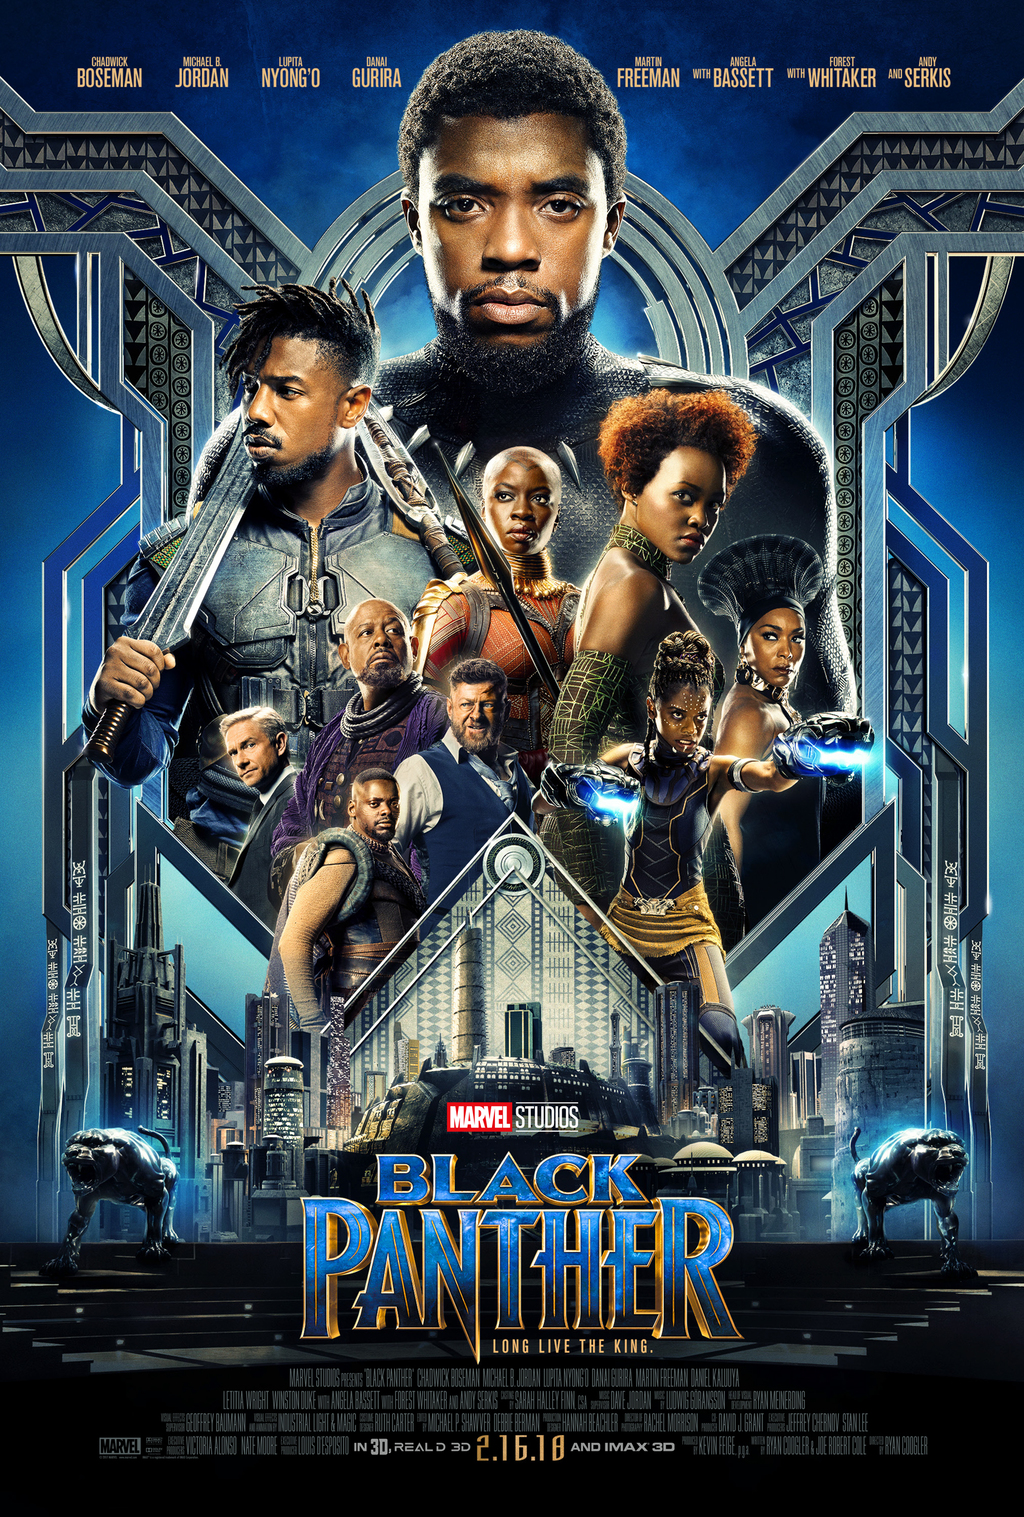 The Cast of Black Panther- What You Need To Know About Them Before Seeing Black Panther